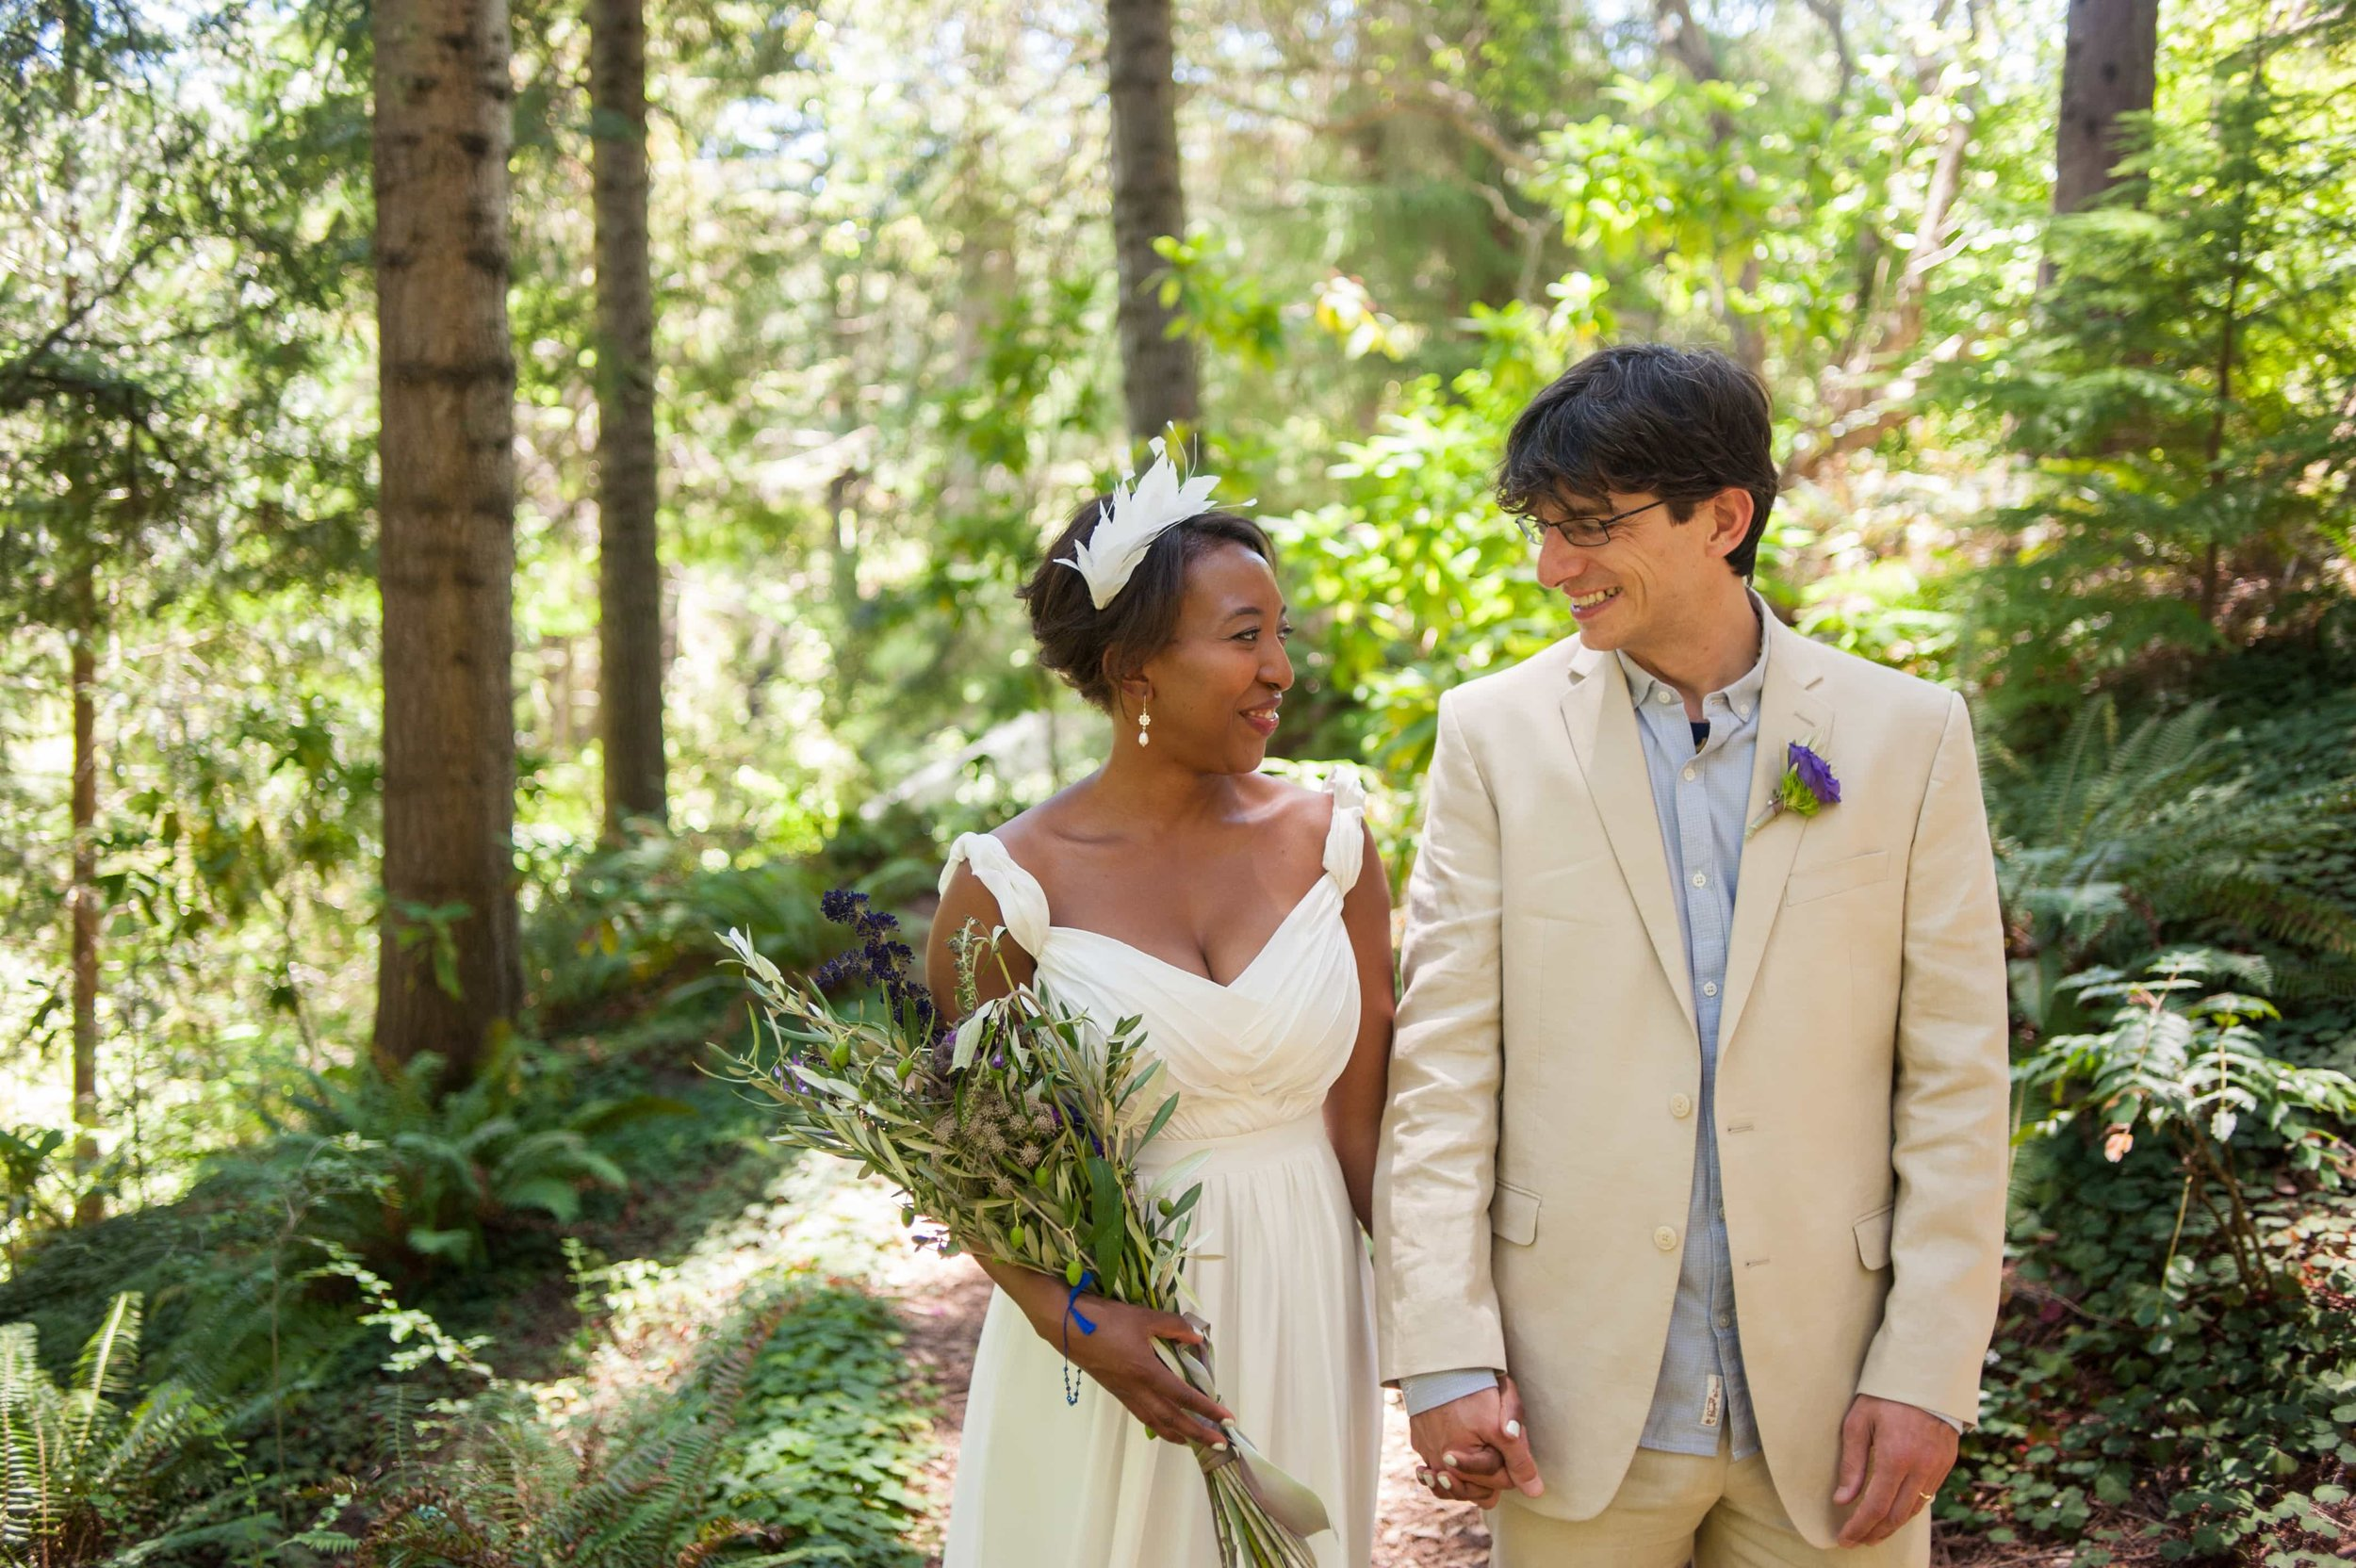 Bride and Groom wedding photo at the Botanic Garden in Tilden Park